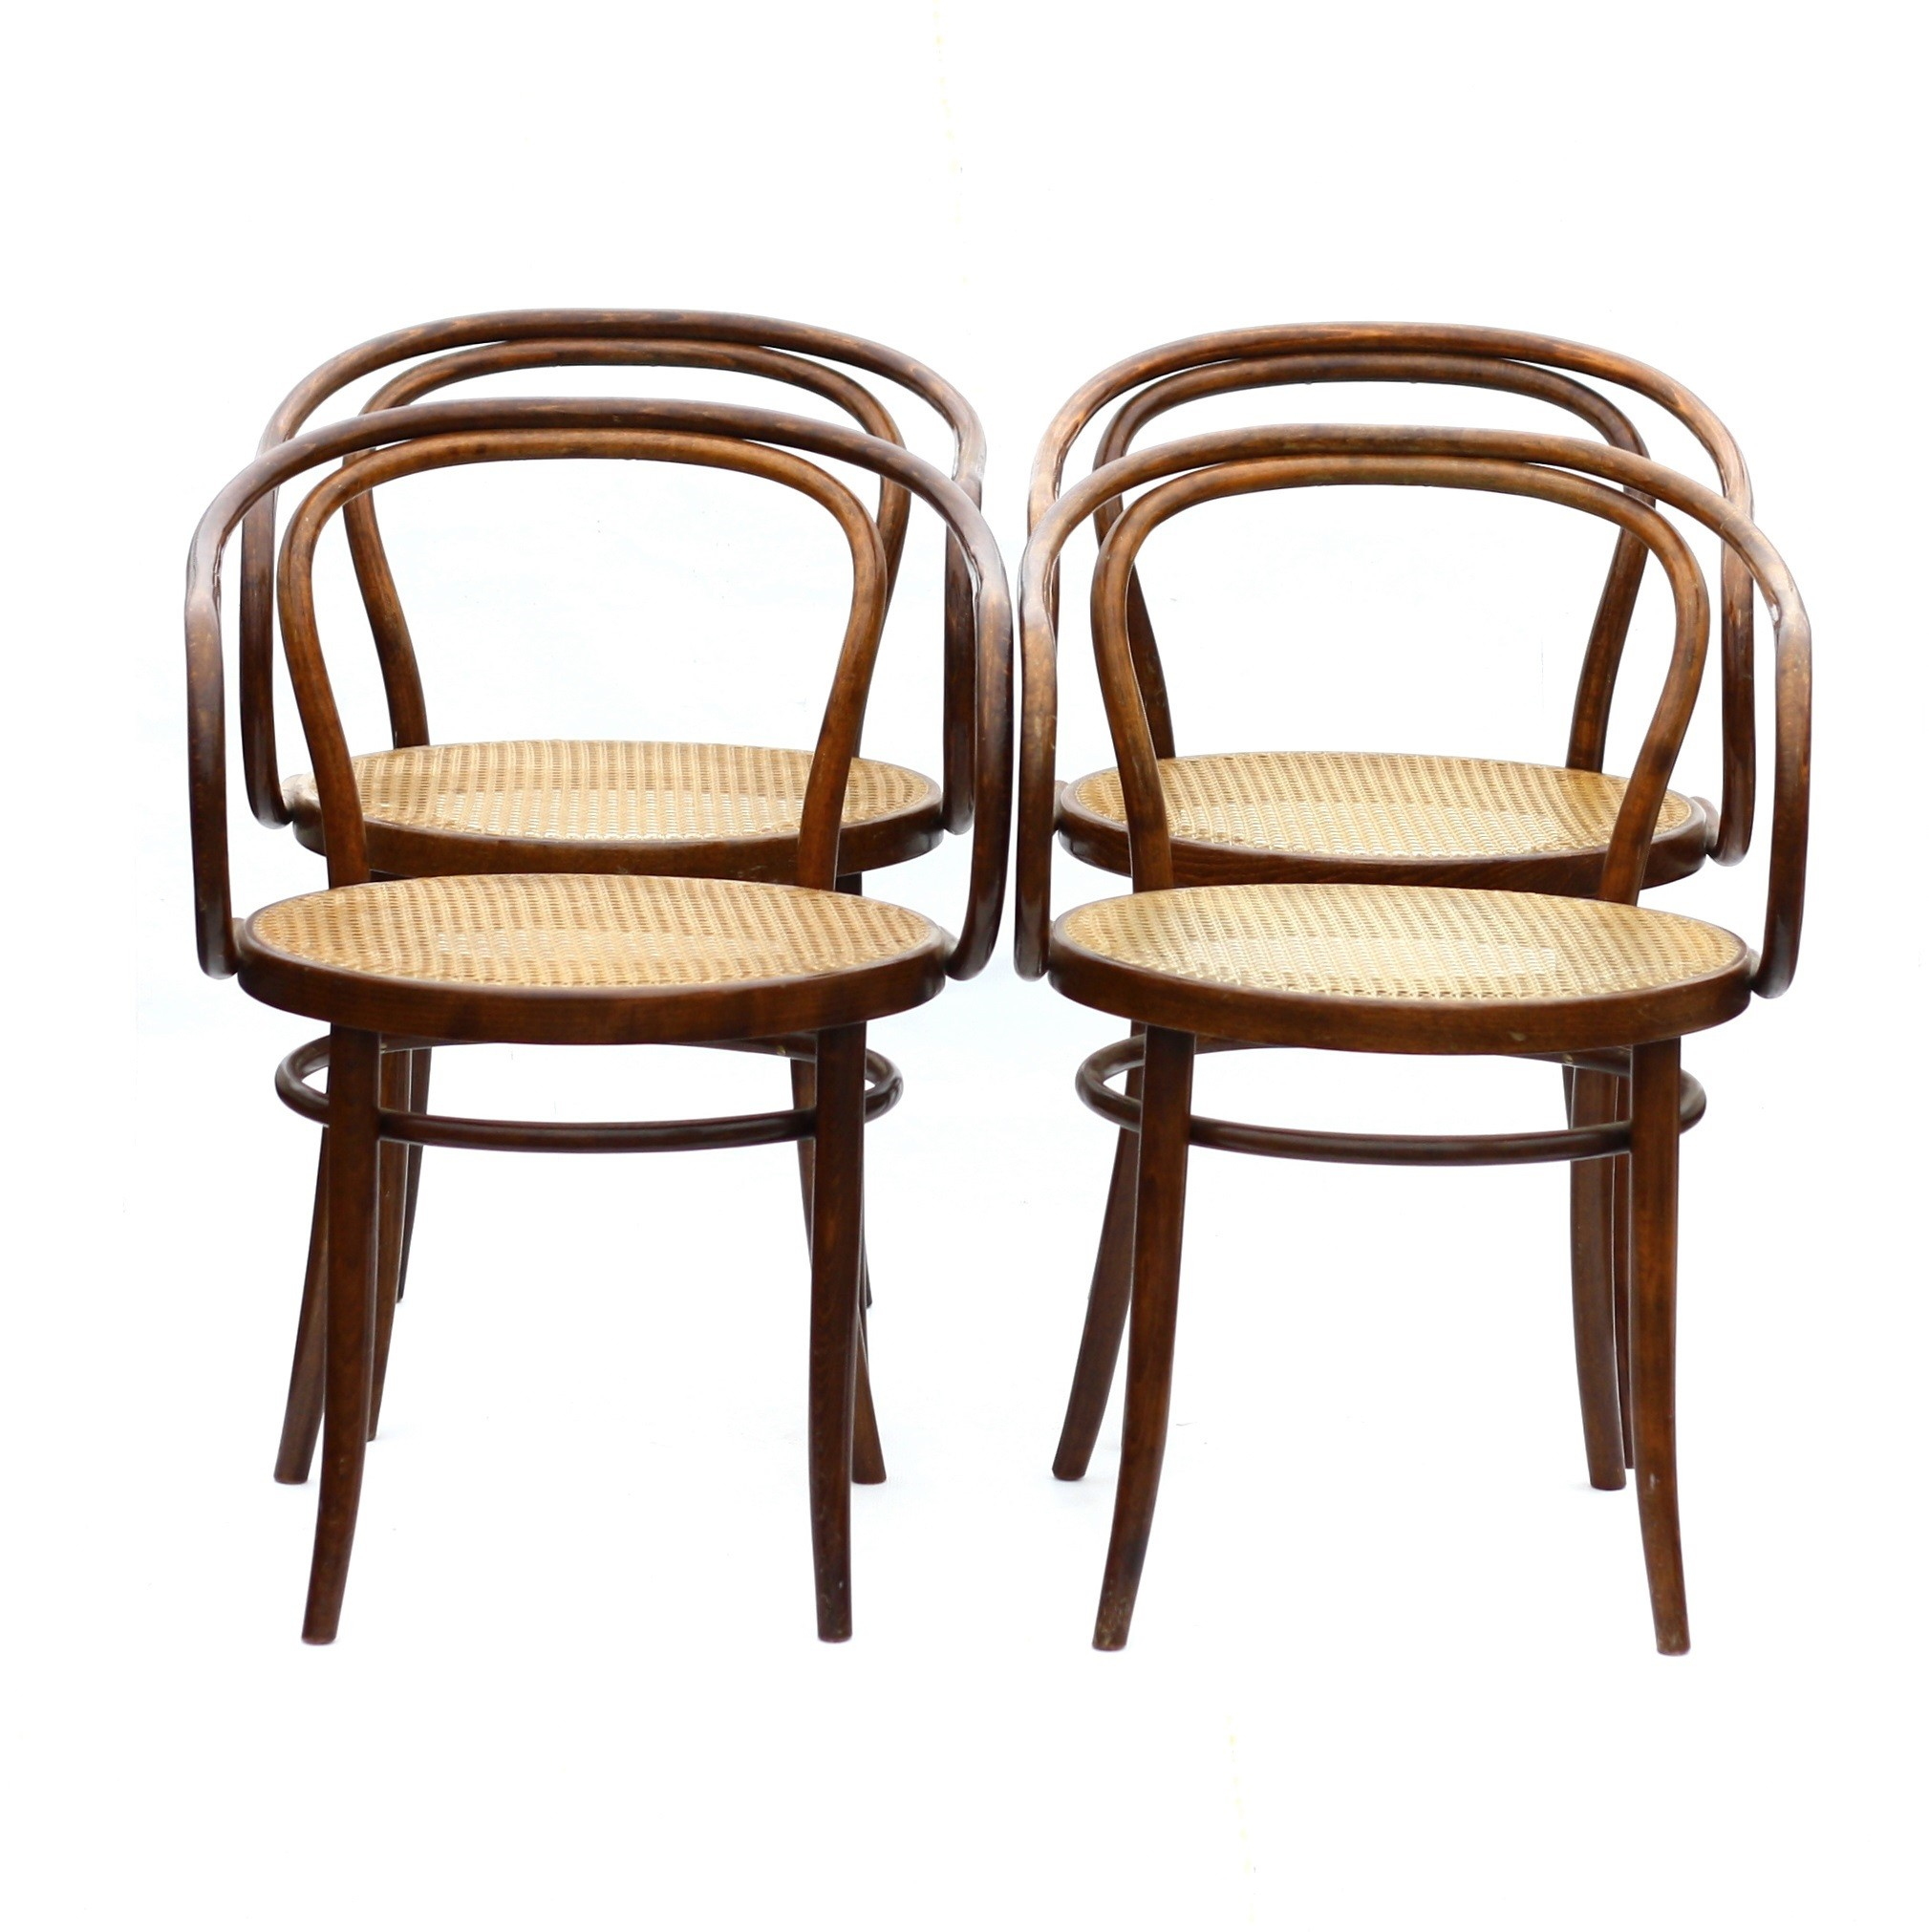 Set Of 4 Ton Chairs Auguste Thonet 1970s Design Market